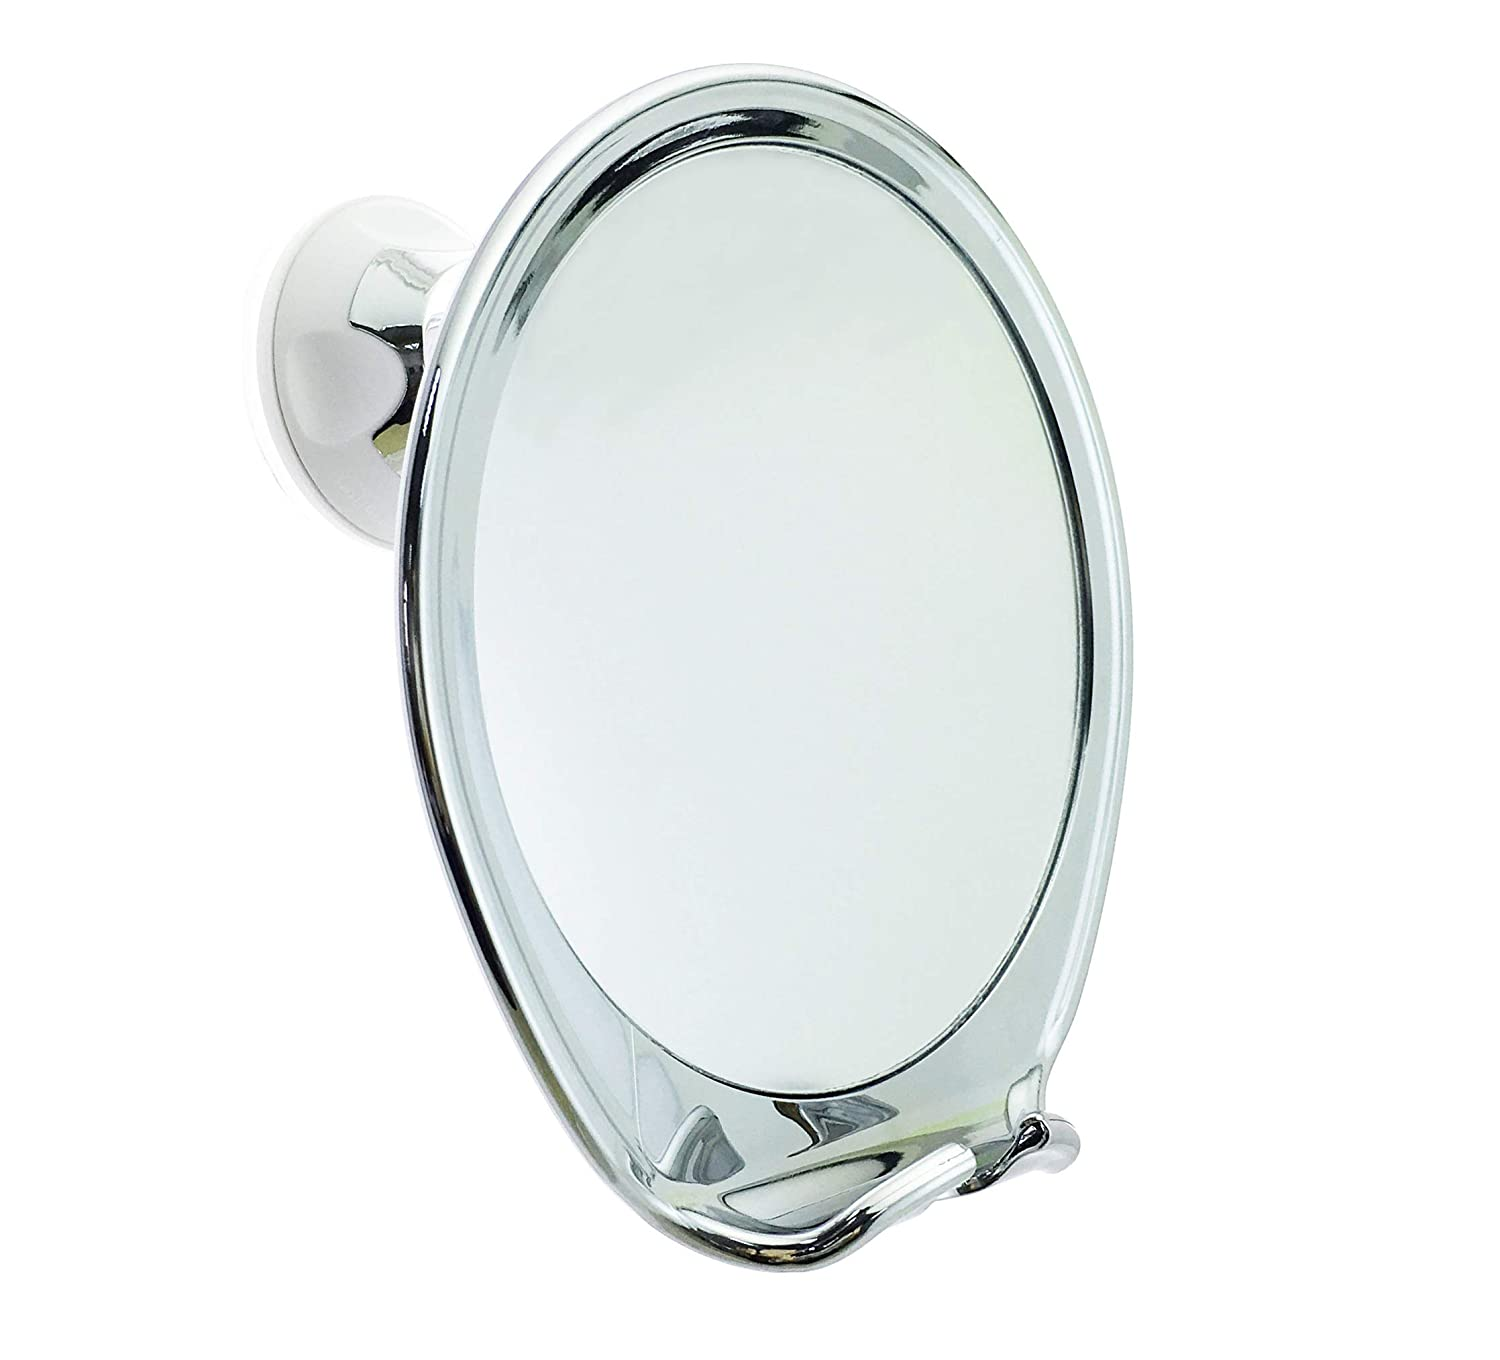 JiBen Fogless Shower Mirror with Power Locking Suction Cup, Built-in Razor Hook and 360 Degree Rotating Adjustable Arm | Best Personal Fog Free Shaving Mirror! (Chrome) m003